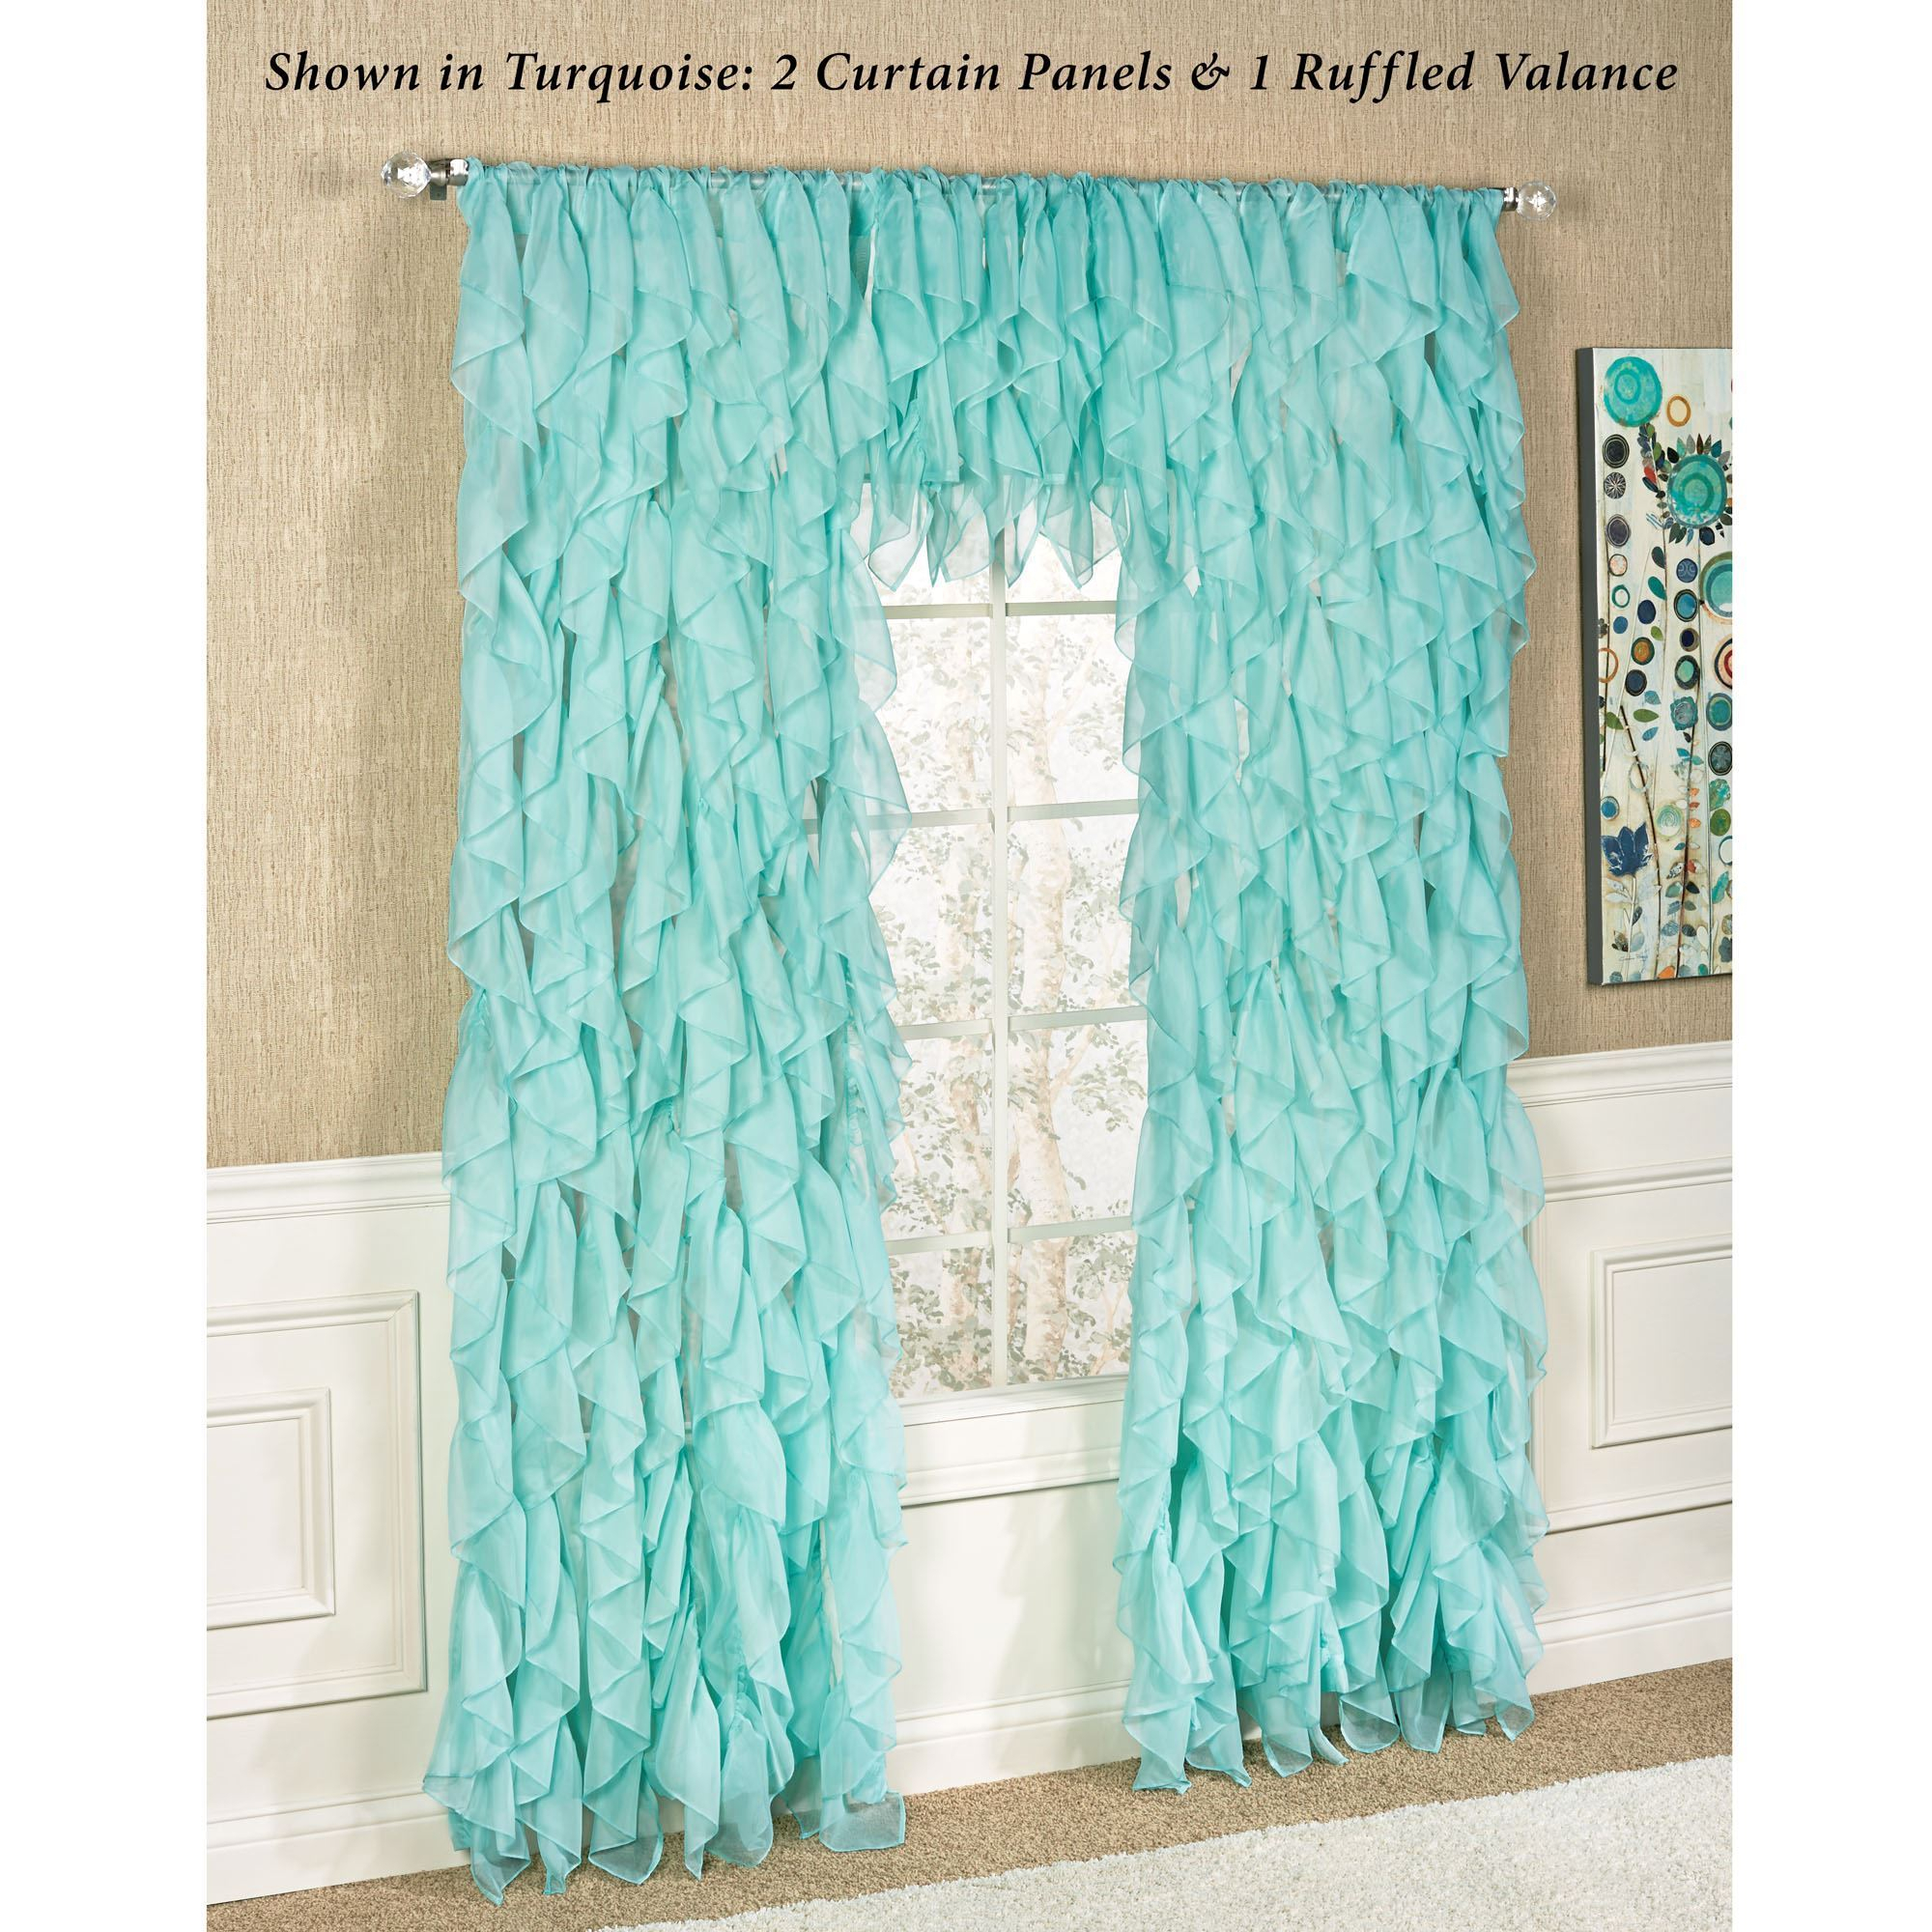 Cascade Sheer Voile Ruffled Window Treatment Within Sheer Voile Ruffled Tier Window Curtain Panels (View 4 of 20)